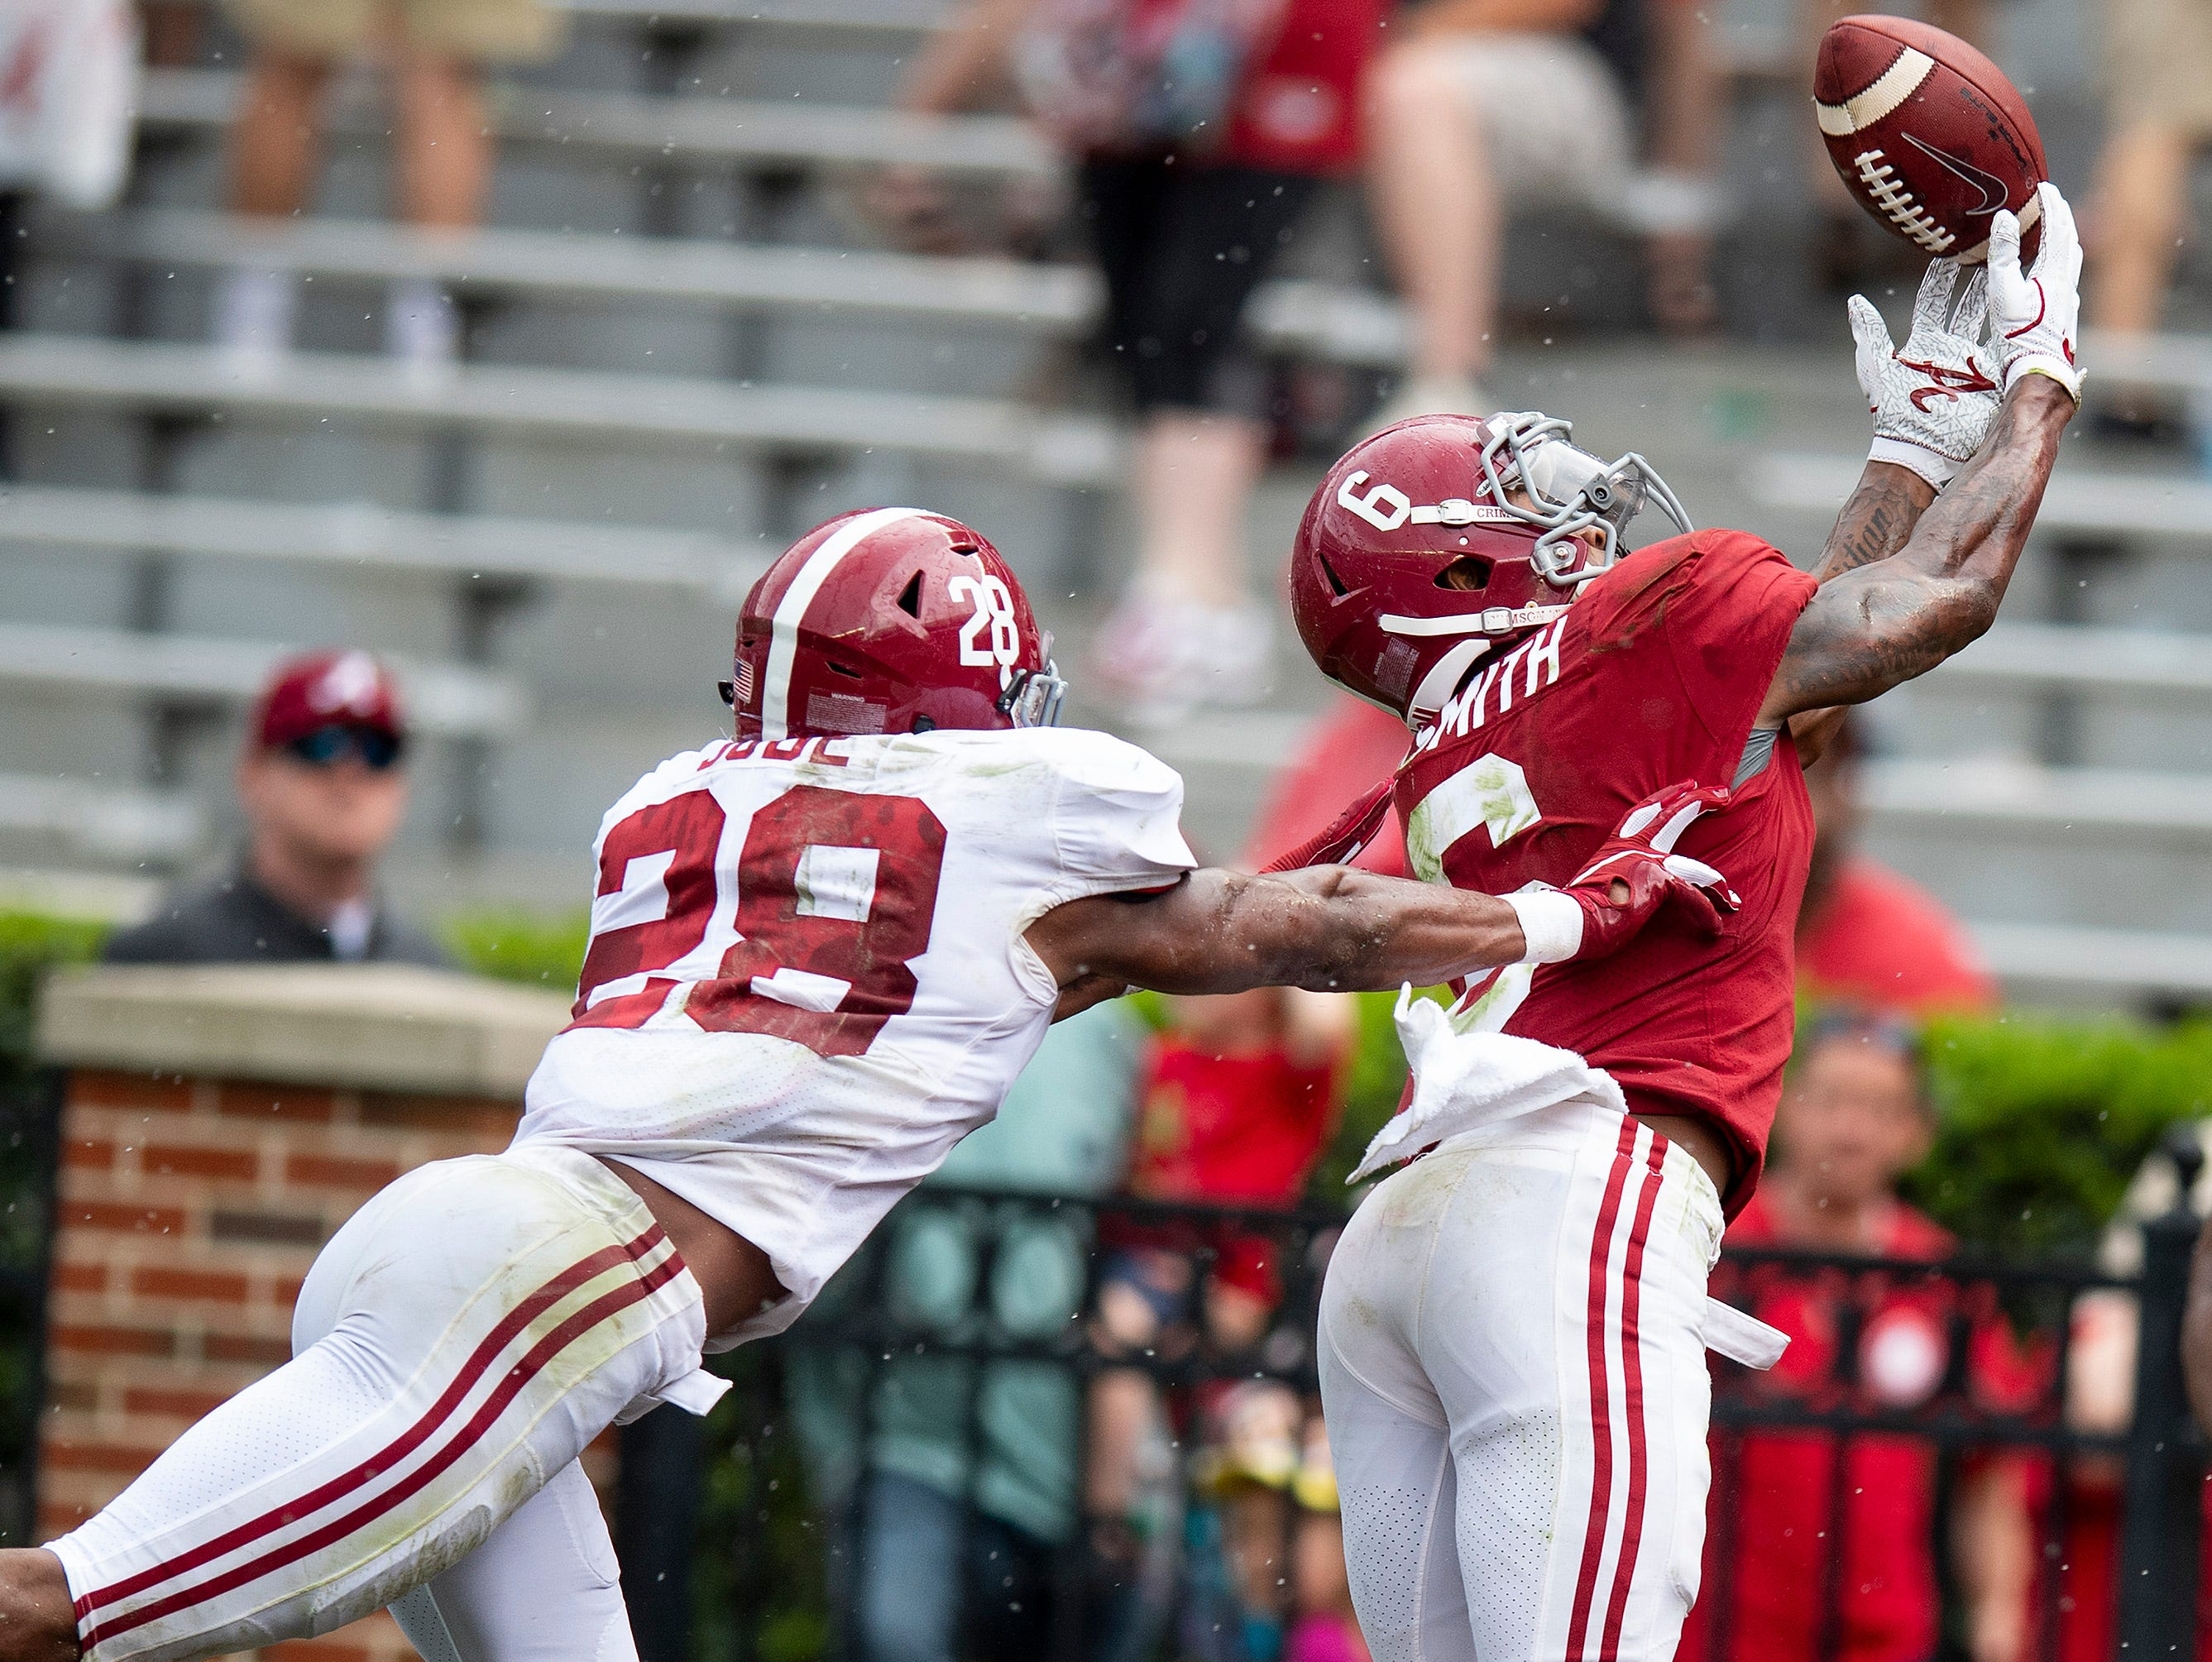 The ball goes off the fingertips of wide receiver DeVonta Smith (6) against defensive back Josh Jobe (28) during second half action in the Alabama A-Day spring football scrimmage game at Bryant Denny Stadium in Tuscaloosa, Ala., on Saturday April 13, 2019.